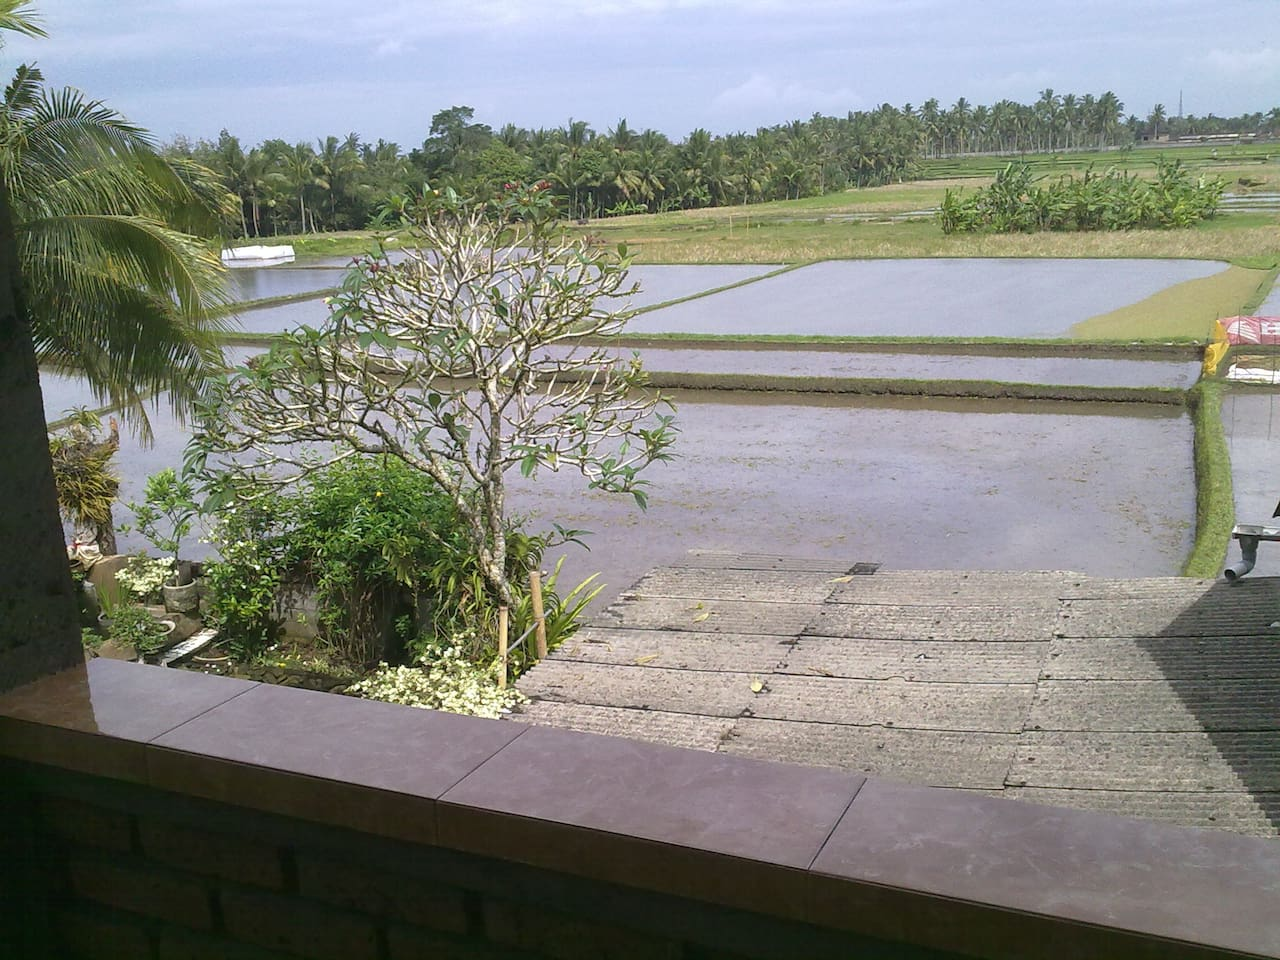 very nice view of rice field and garden from veranda